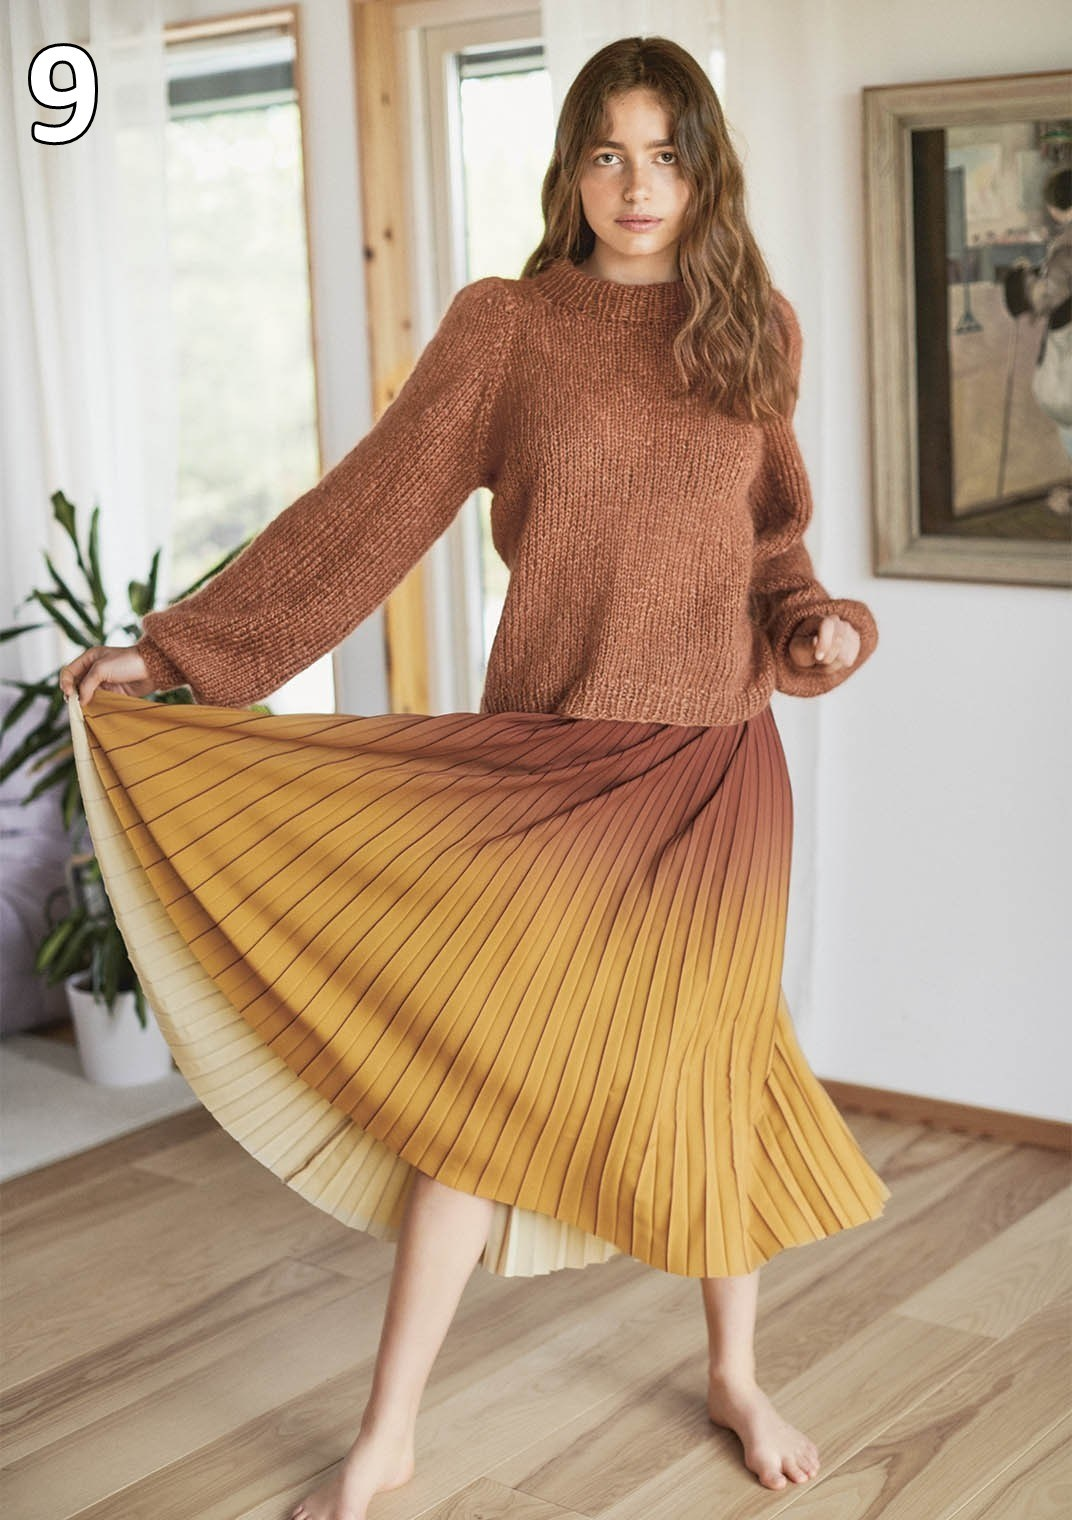 Sandnes strikkehæfte 1912 model 9 Pufgenser (sweater)